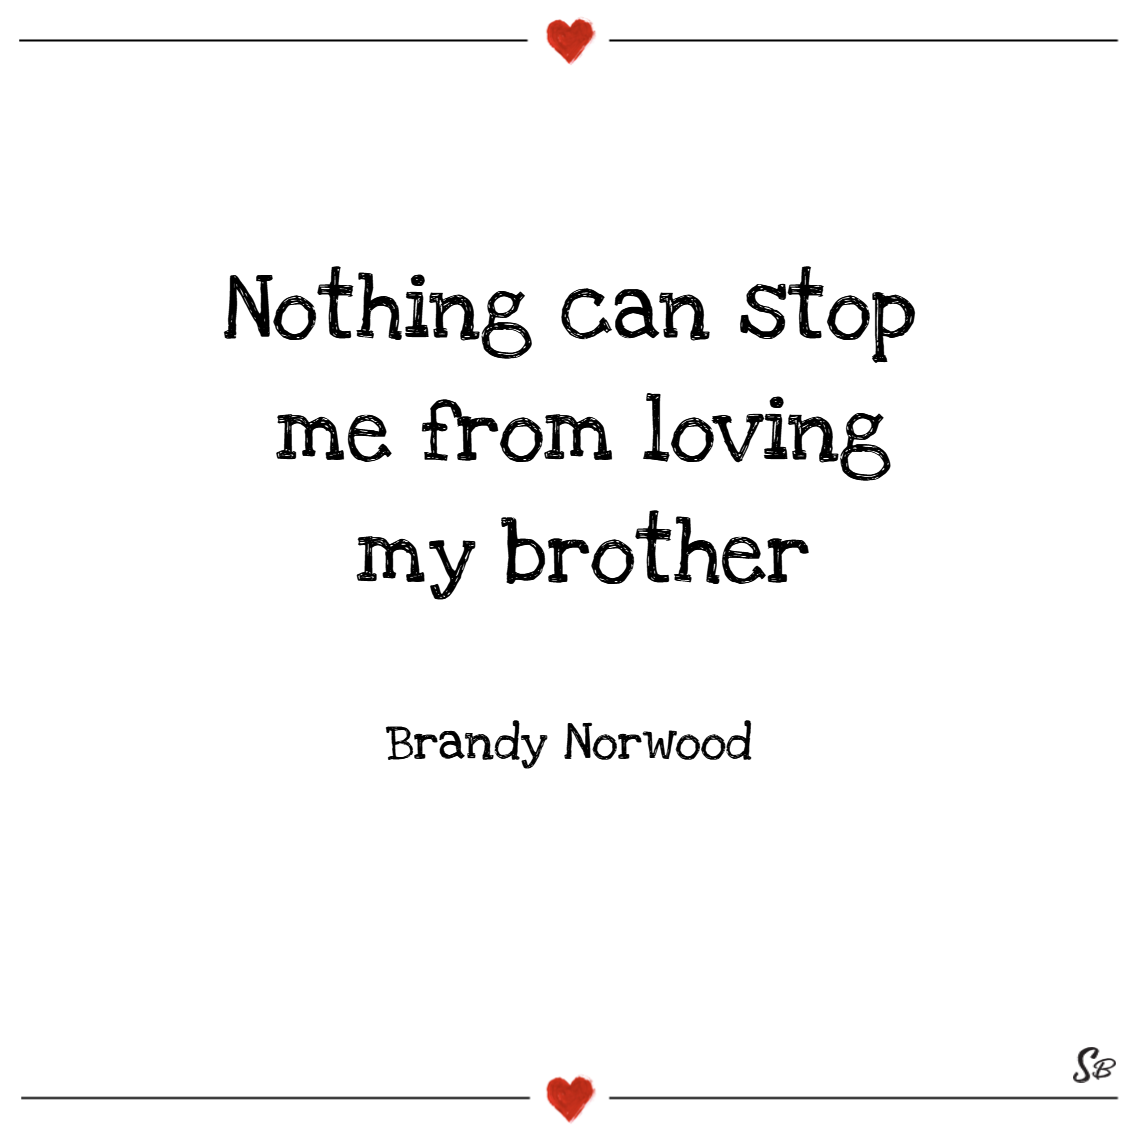 Nothing can stop me from loving my brother – brandy norwood